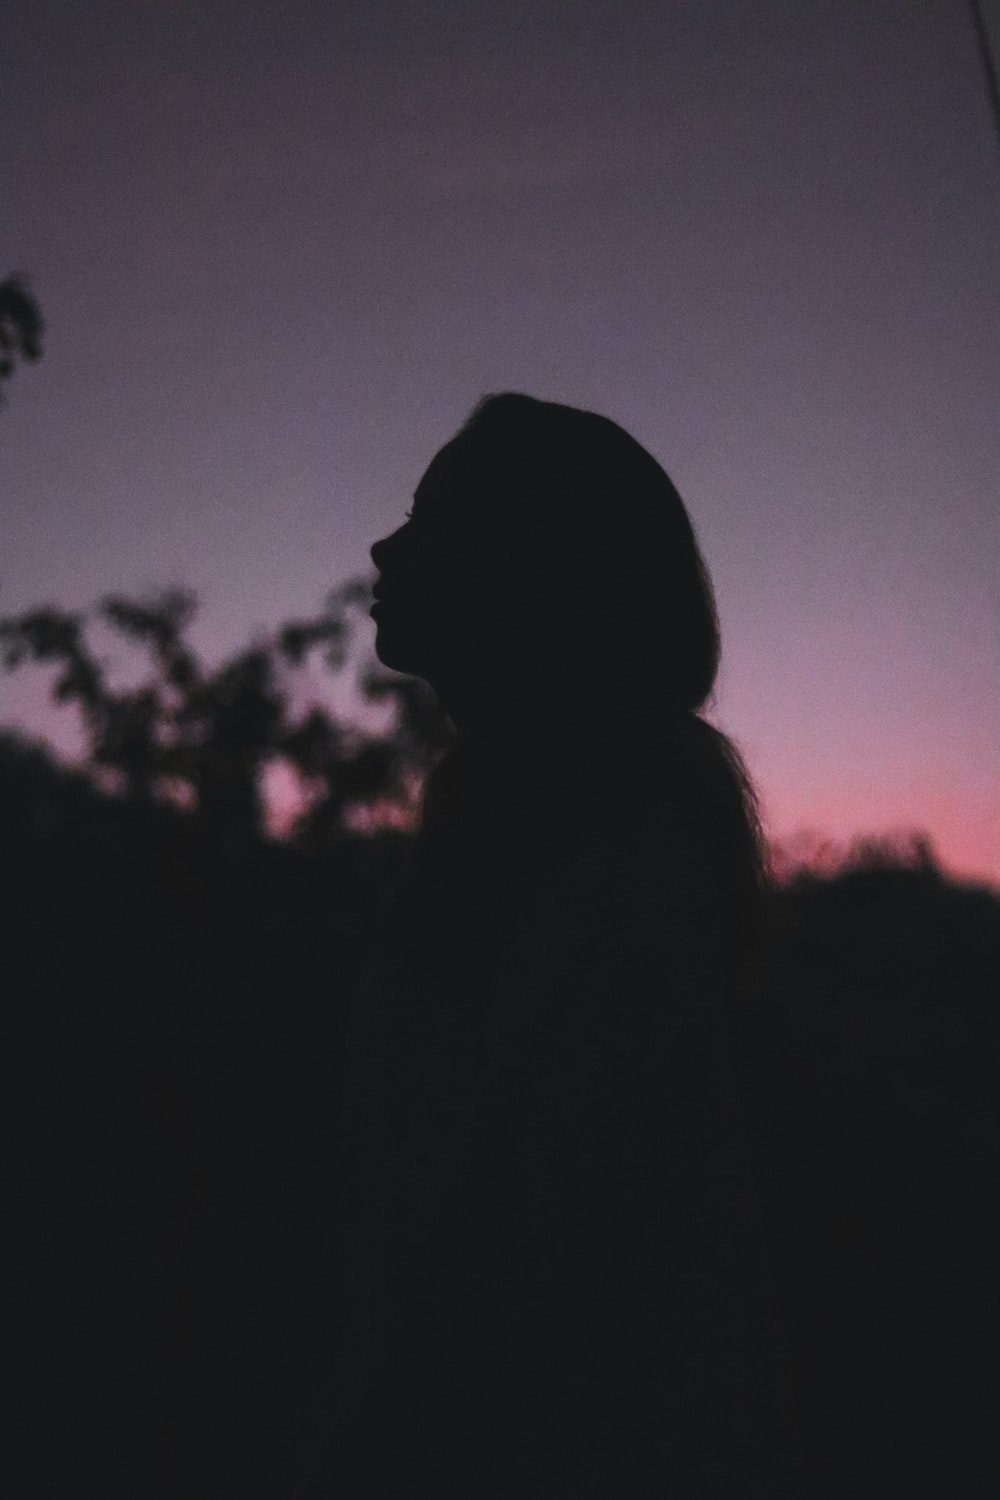 silhouette of person during golden hour